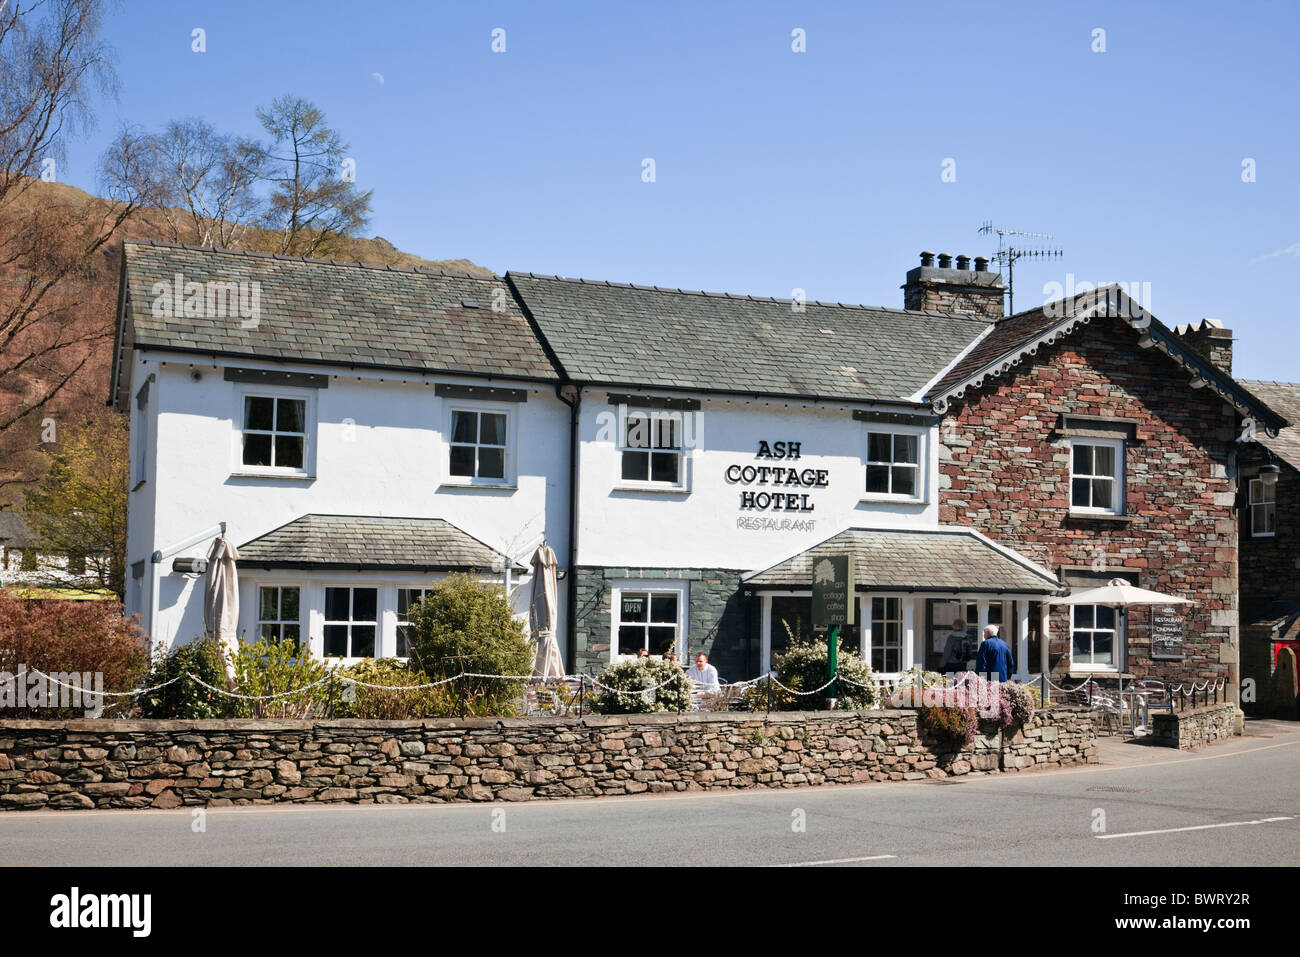 Ash Cottage country hotel and cafe in the Lake District National Park village. Grasmere, Cumbria, England, UK. - Stock Image